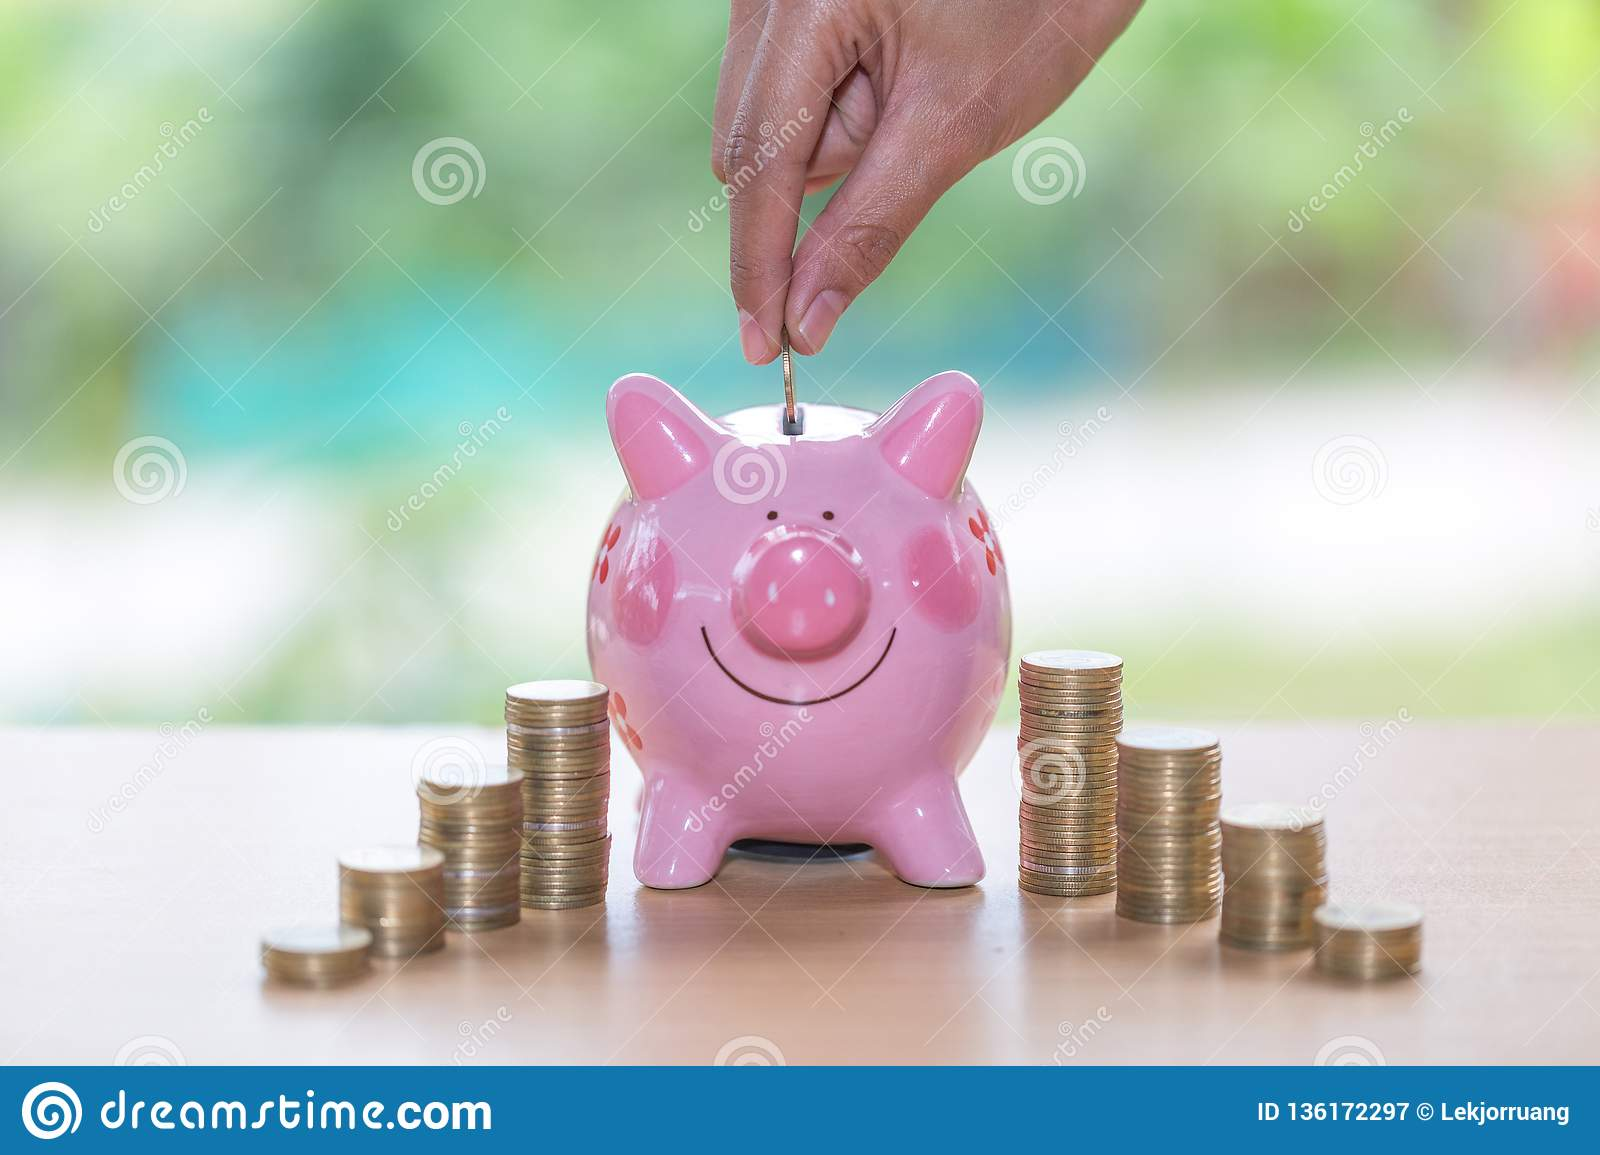 Inserting A Coin Into A Piggy Bank Piggy Bank With Growth